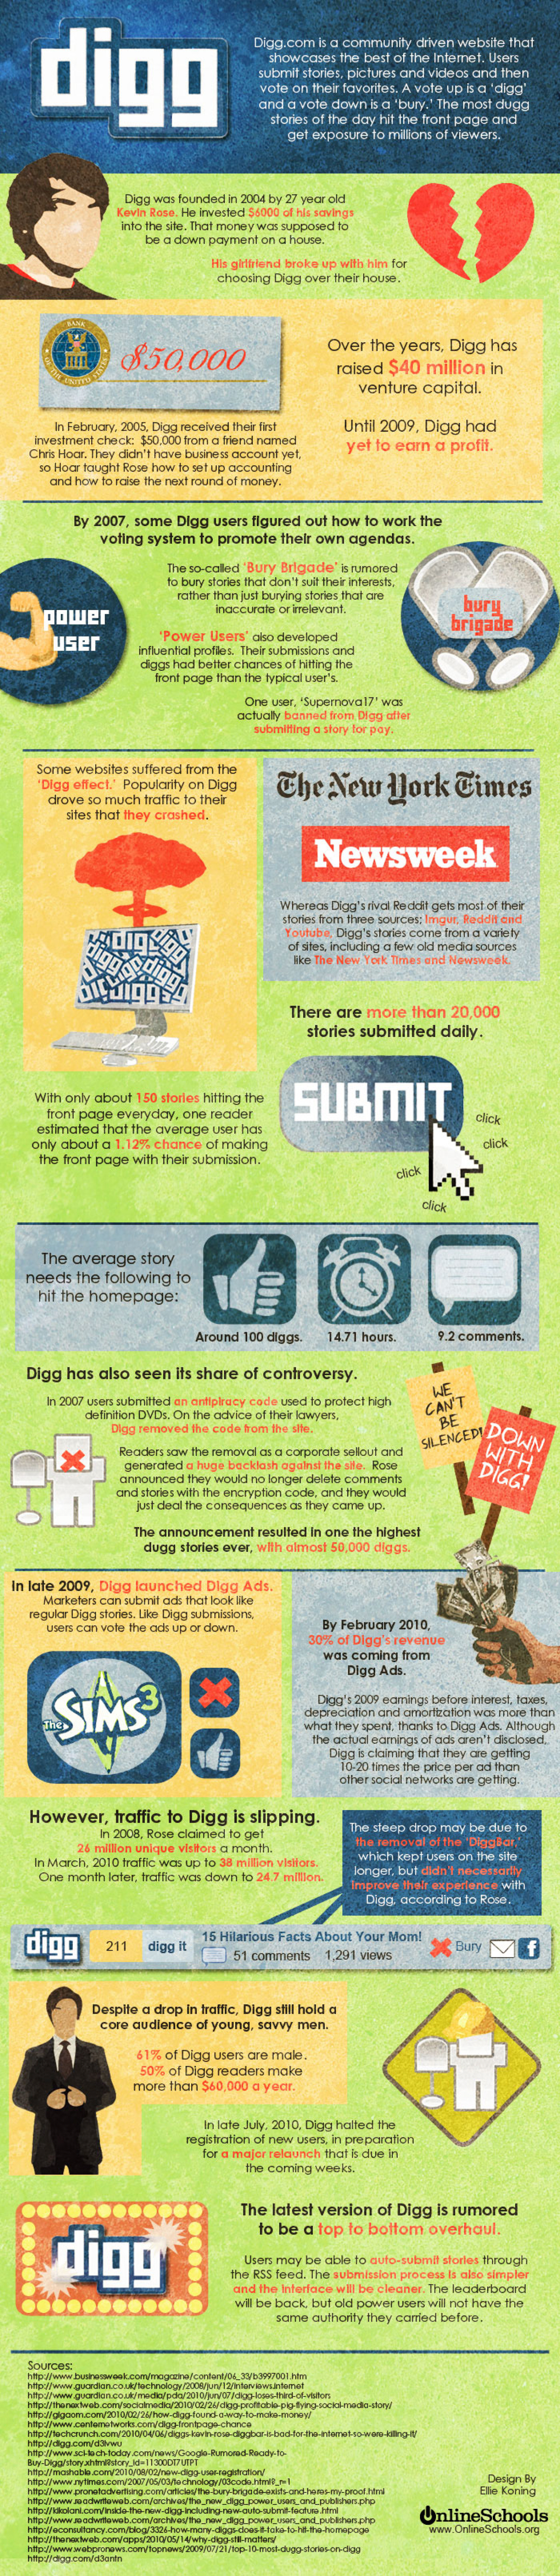 Digg (The Story of) Infographic